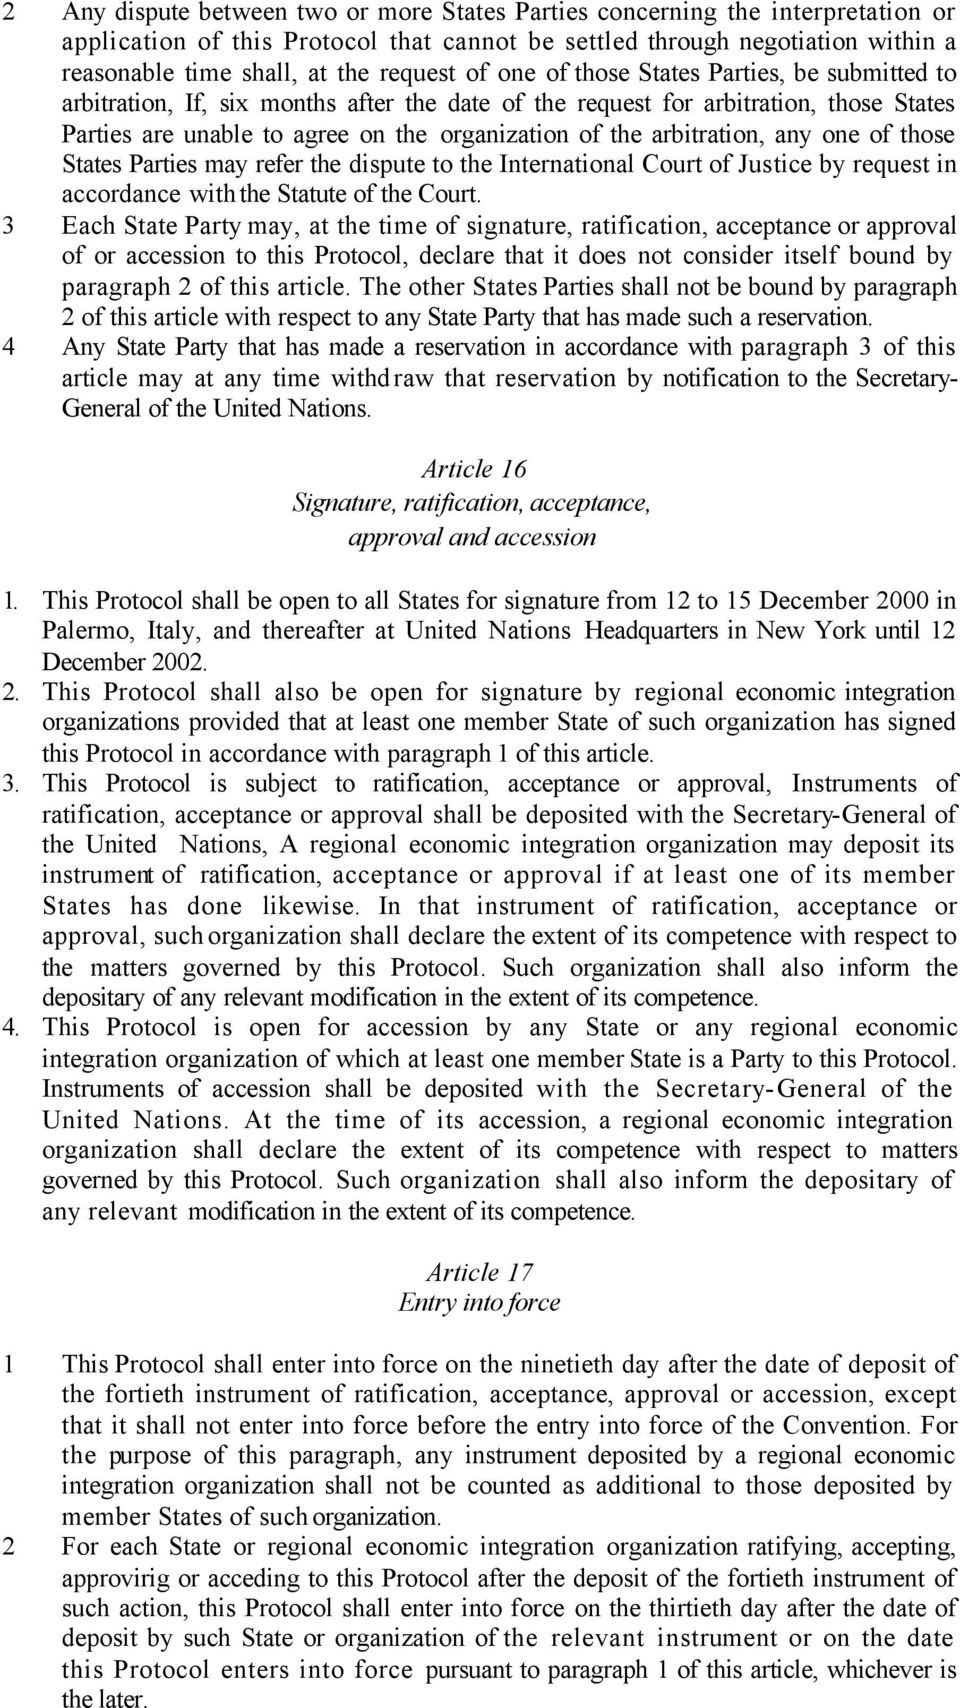 arbitration, any one of those States Parties may refer the dispute to the International Court of Justice by request in accordance with the Statute of the Court.